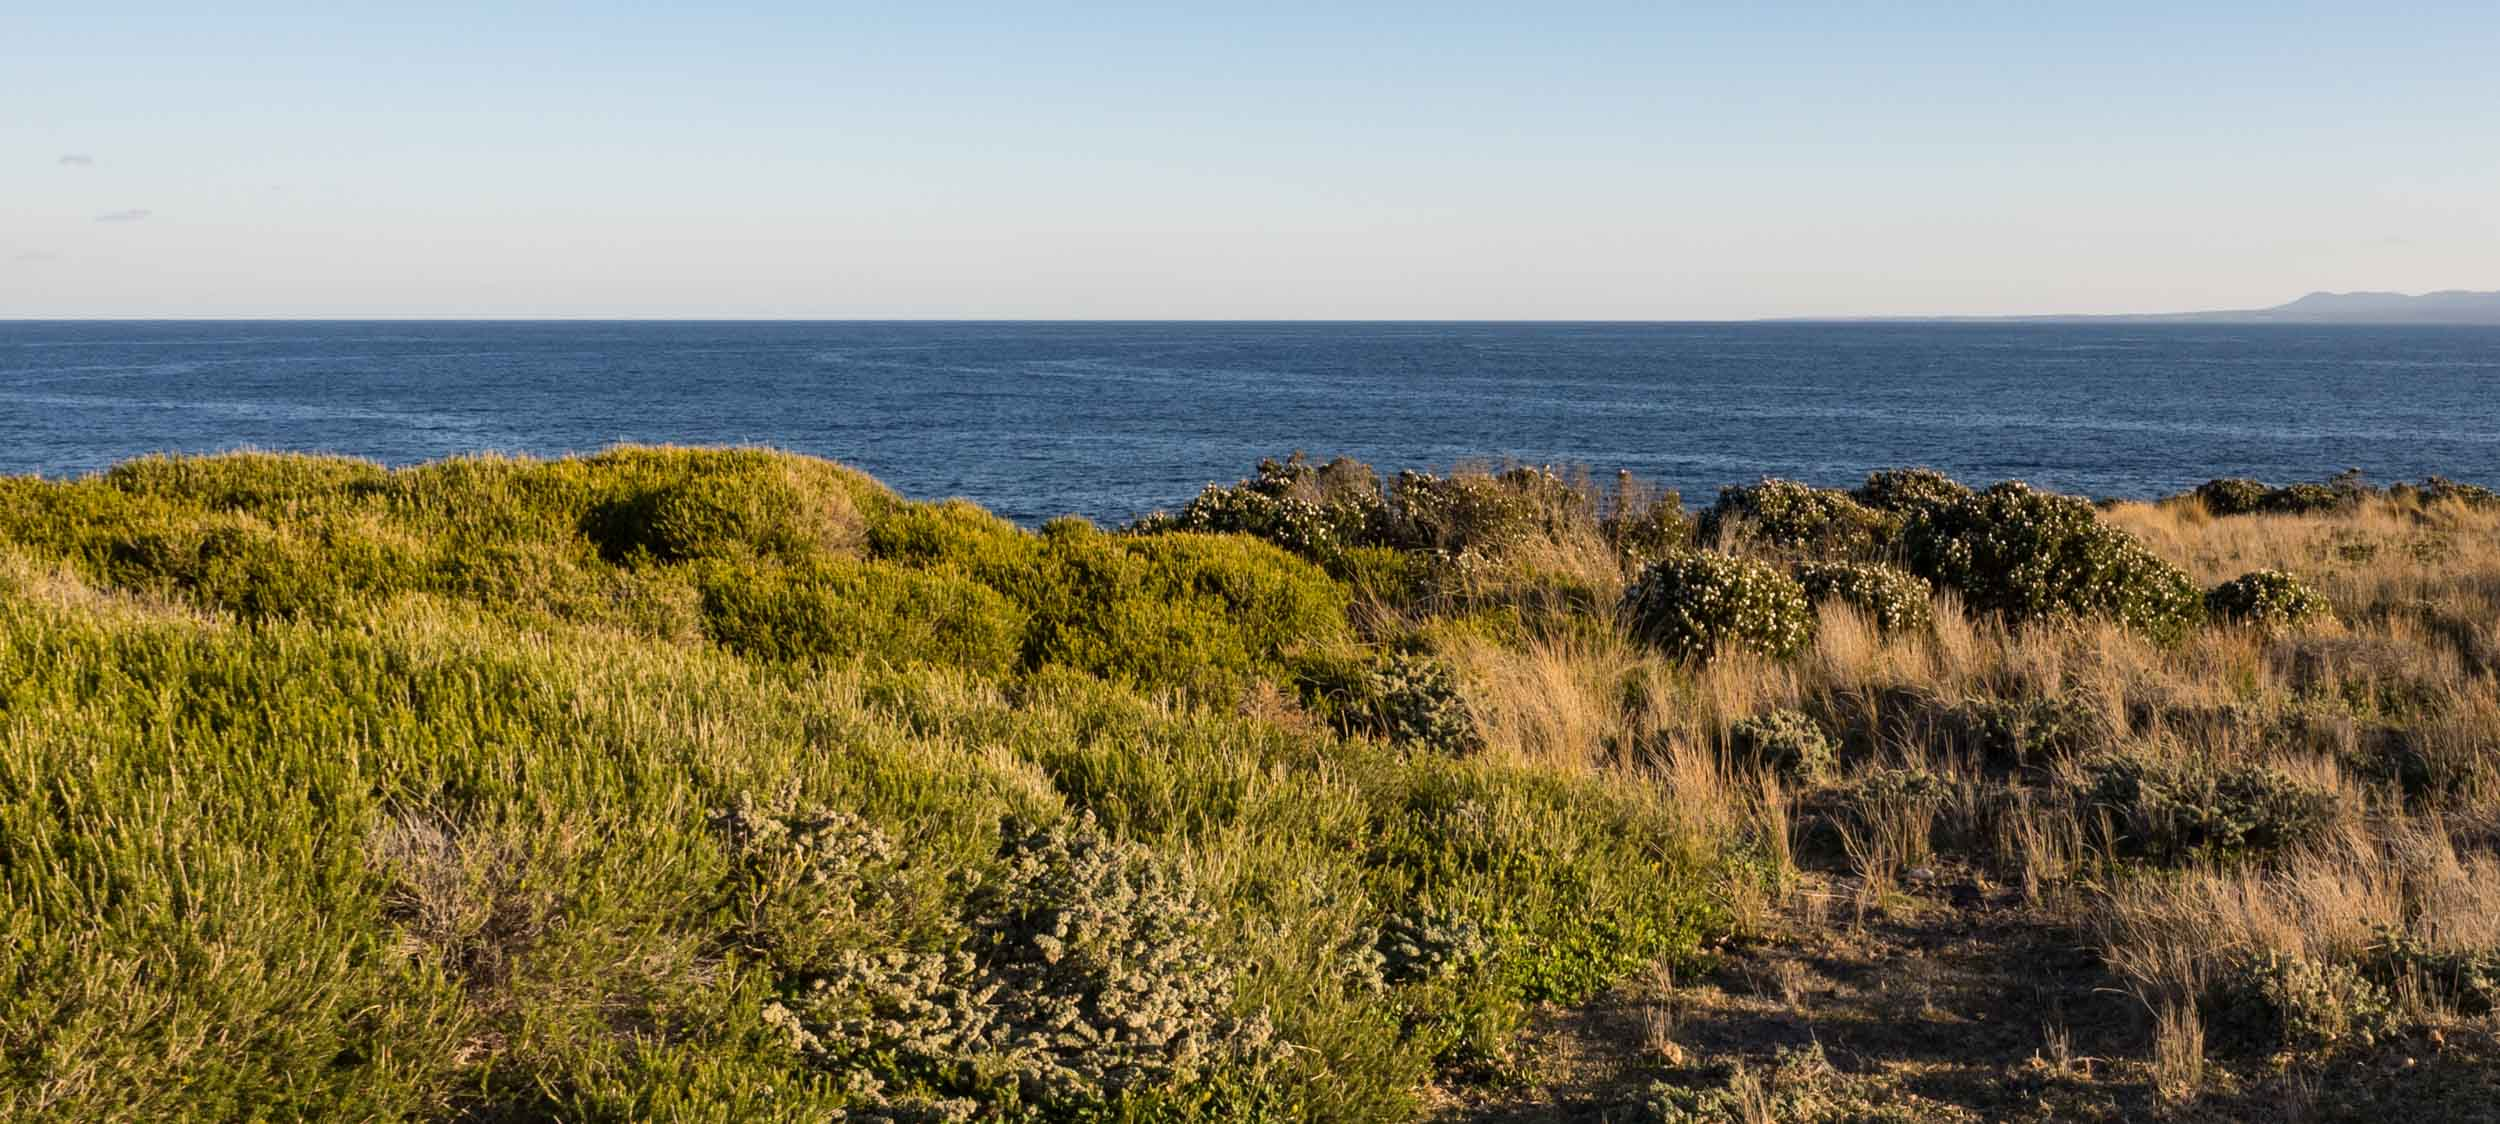 Greencape, looking south, with Point Hicks (and the NSW-Victoria border) in the distance